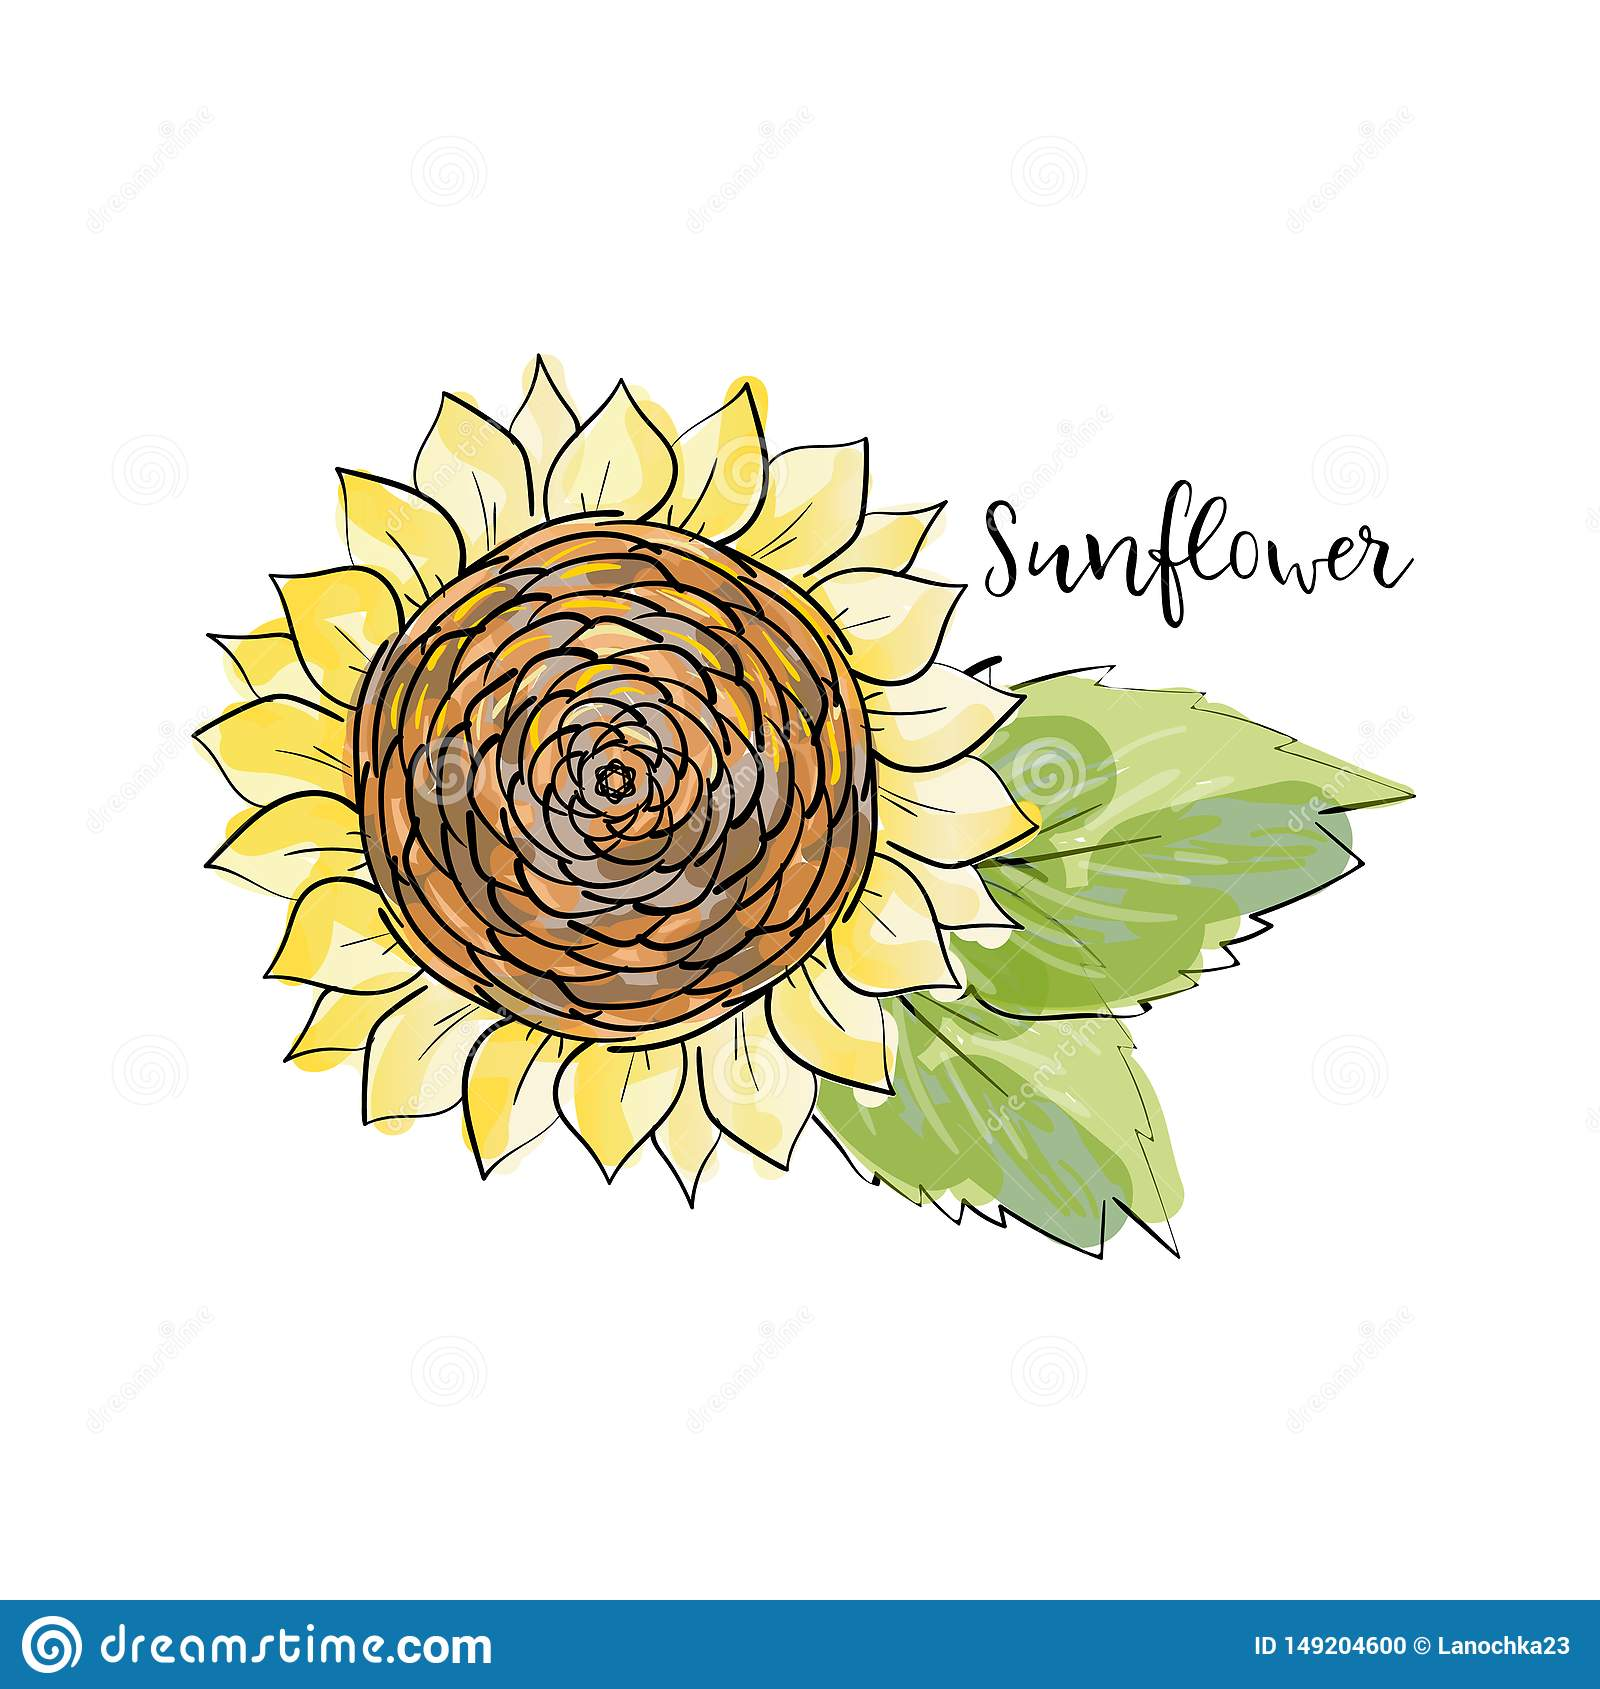 Colorful summer sketch, watercolor marker copic style. Bright and blurred sunflower with leaves. Lettering inscription sunflower.